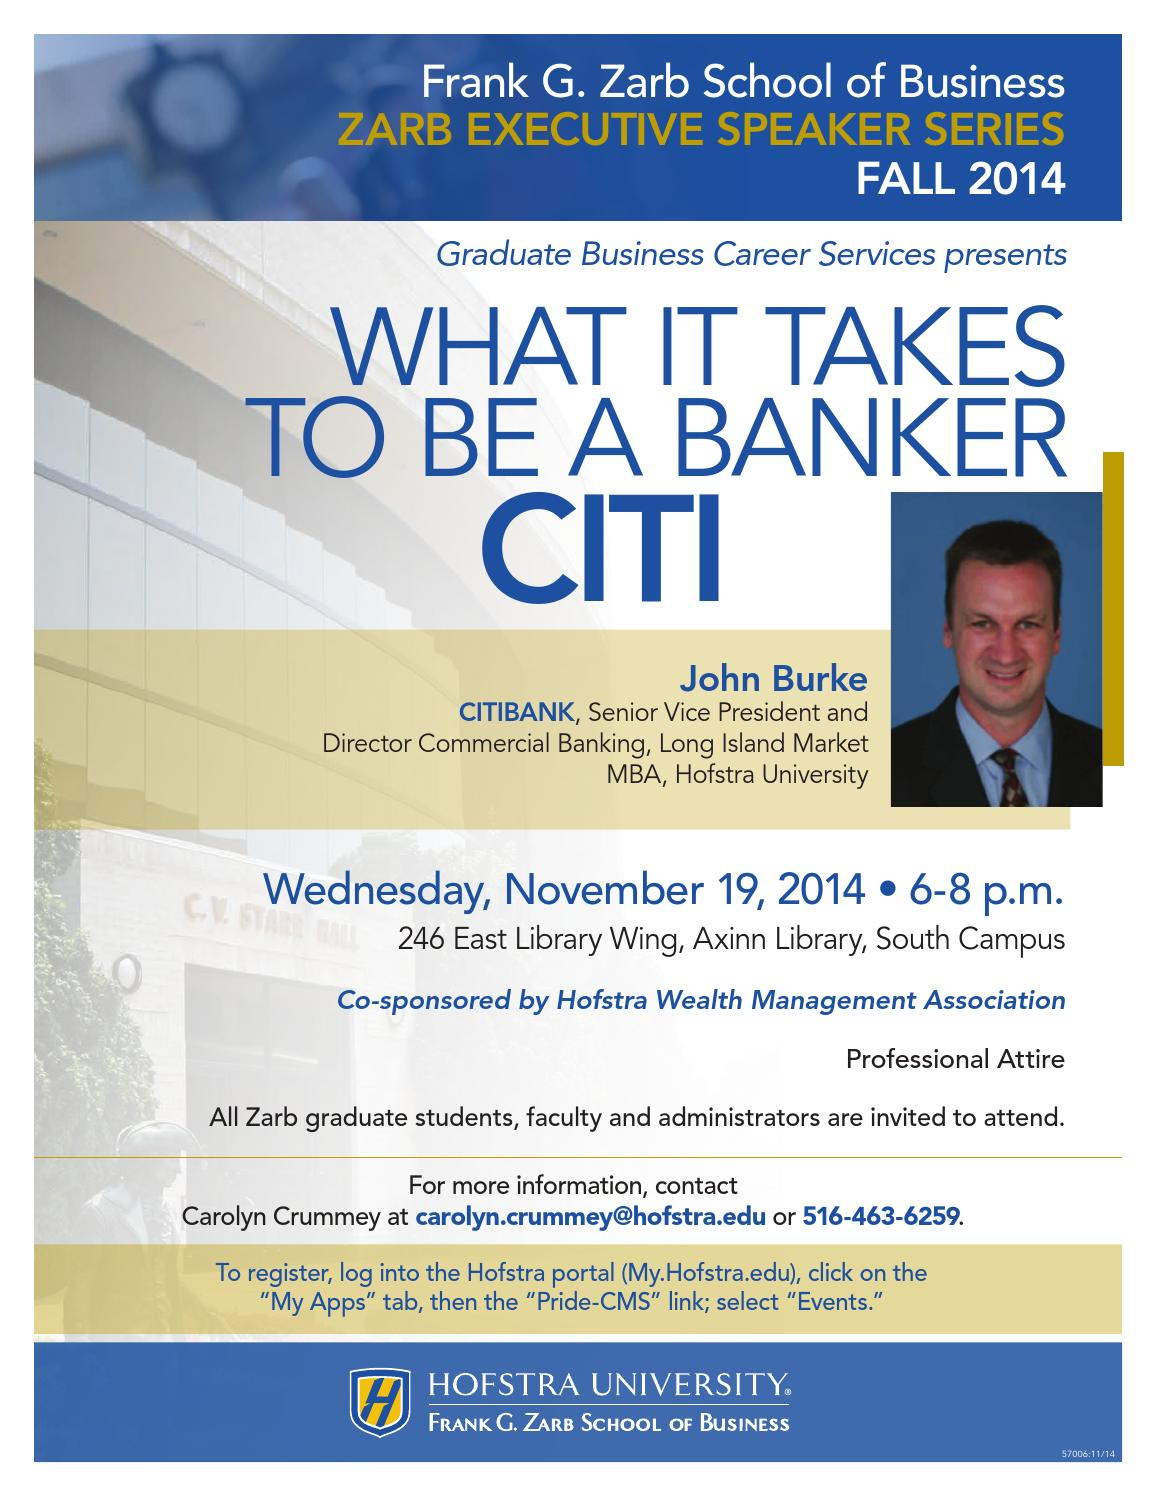 John Burke, Nov 19, Citigroup By Hofstra University  Issuu. Easy Crafts To Sell Online Number Punch Kit. Peoples Insurance Company Royer Tree Service. Regenerative Thermal Oxidizers. Florida International University Masters Programs. Jeep Wrangler Orange Crush Efax Email To Fax. Financial Advising Companies. When Is Nexium Going Generic. Santander Saving Rates Car Accident Nashville